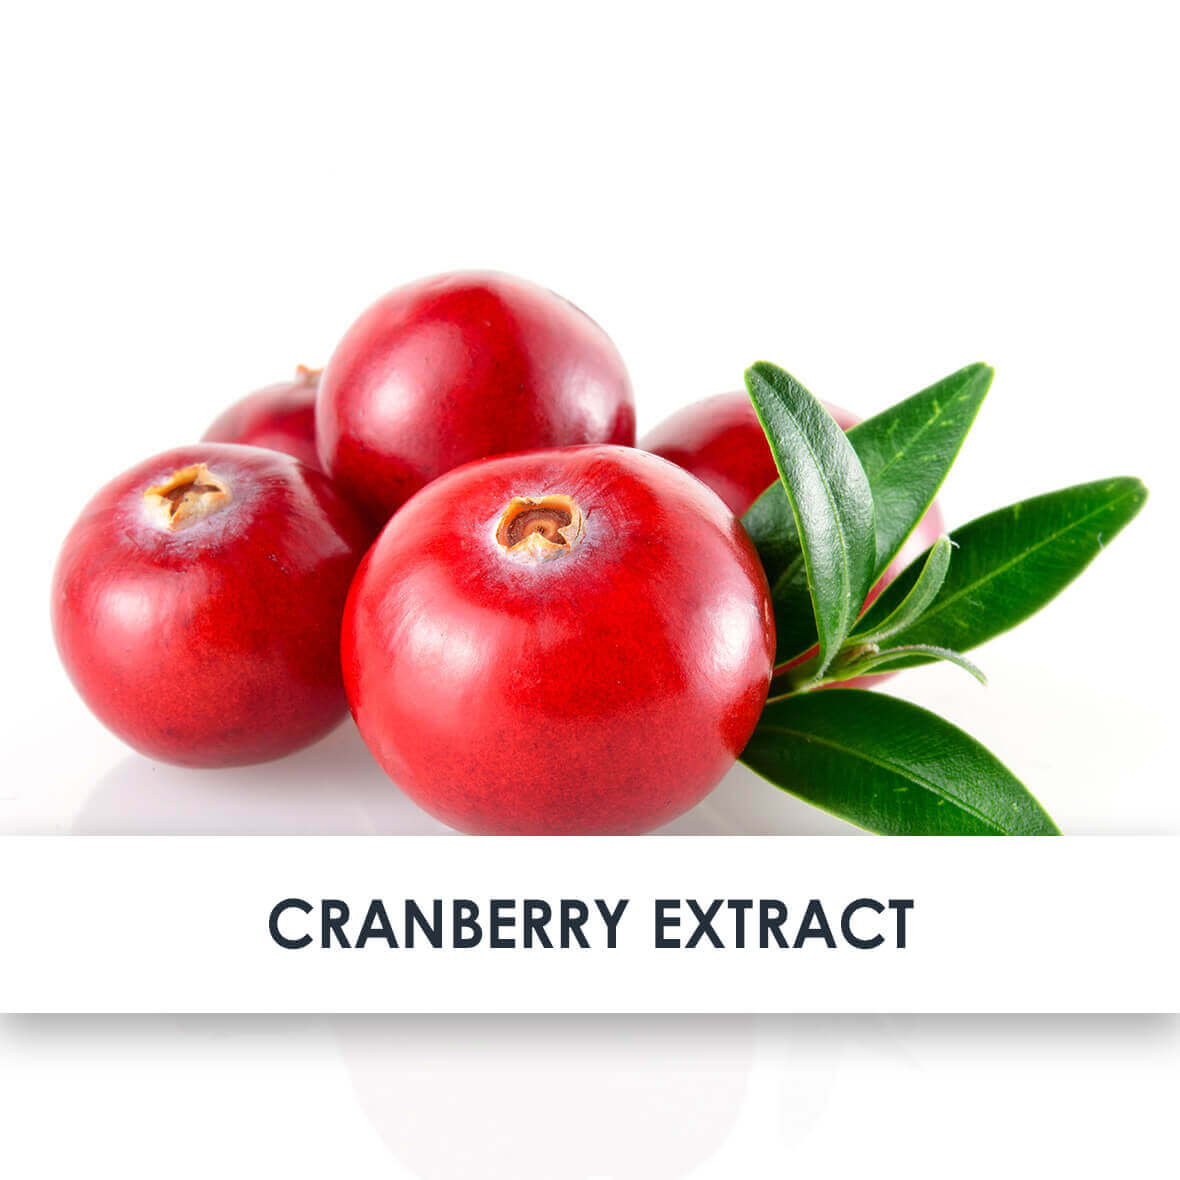 Cranberry Skincare Benefits